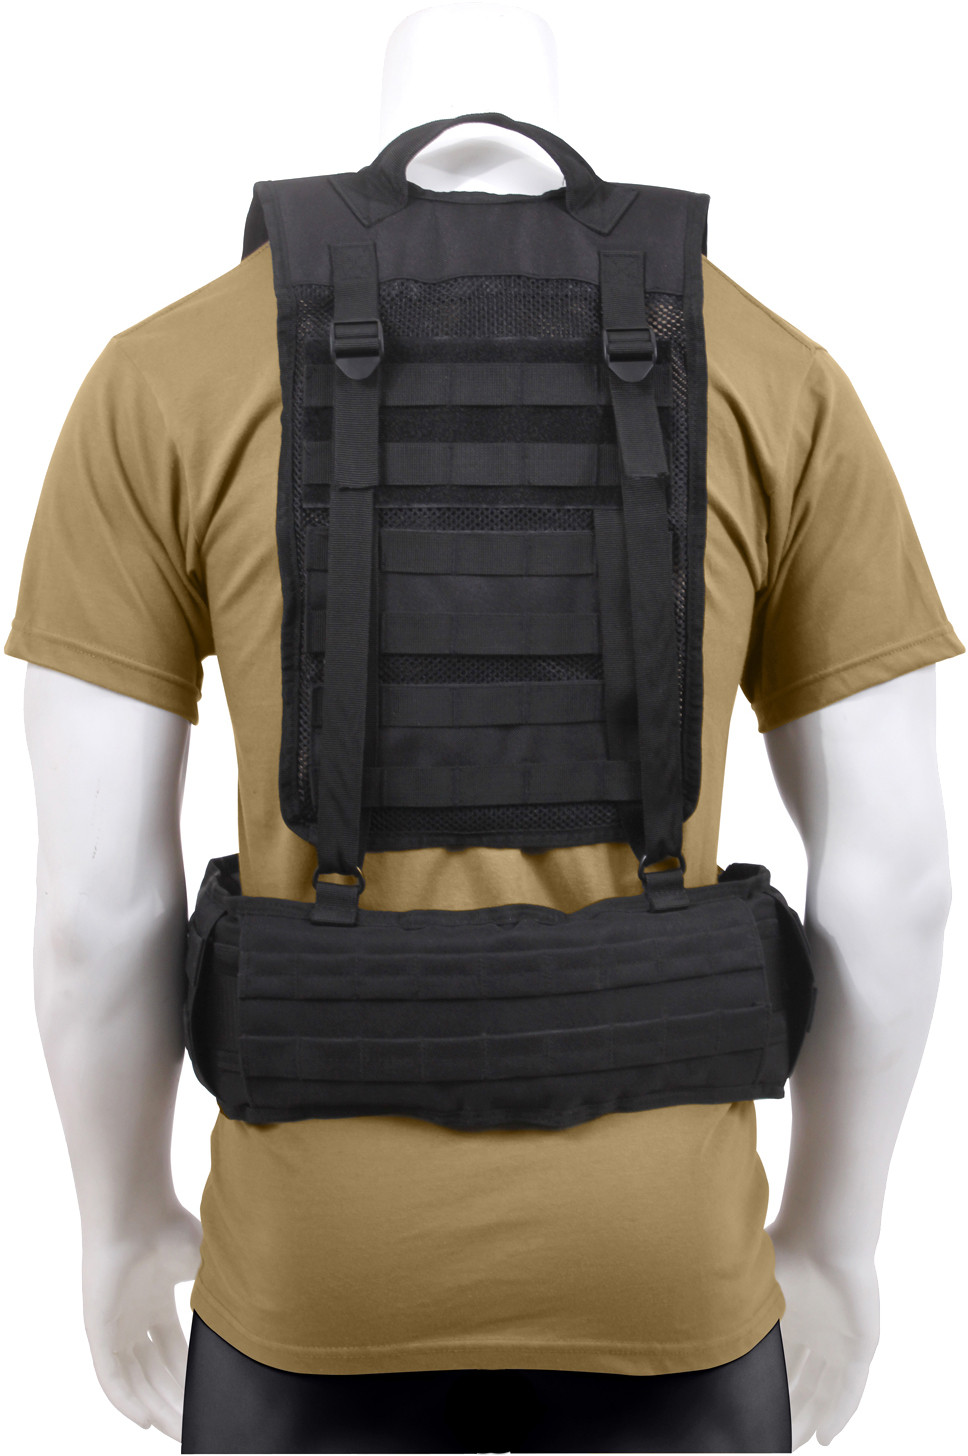 ... Black Military MOLLE Battle Belt Load Bearing Tactical Police Harness  ... 55c34b1af33